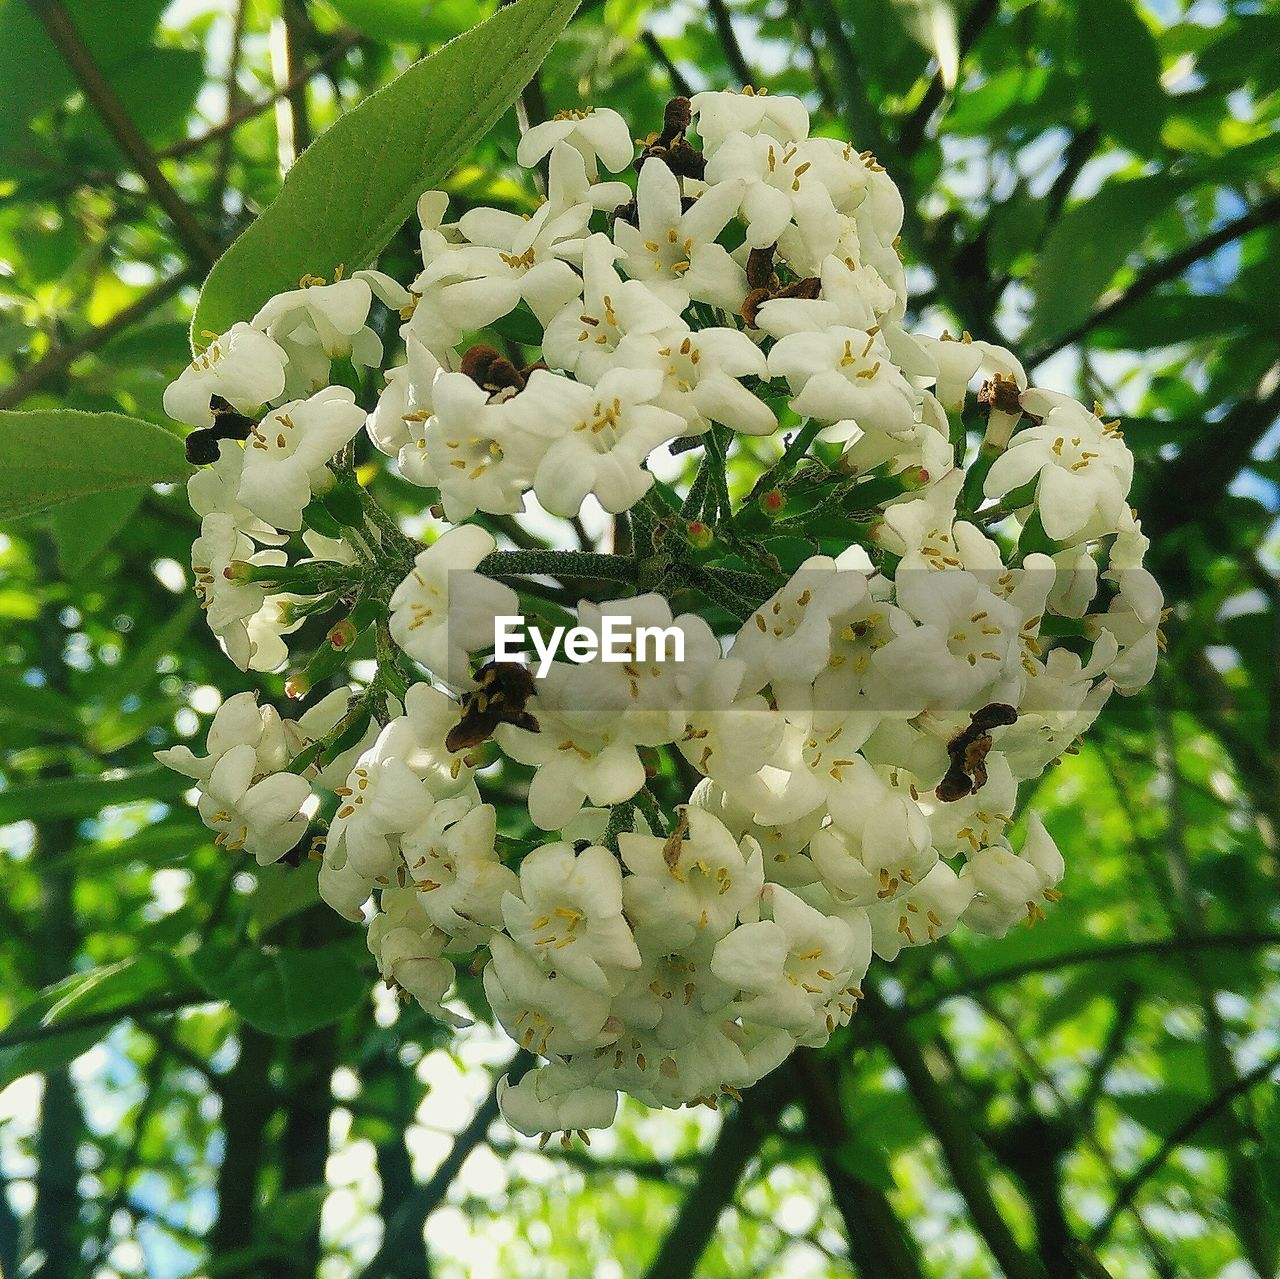 flower, white color, fragility, blossom, nature, growth, petal, tree, botany, beauty in nature, freshness, apple blossom, day, close-up, springtime, branch, no people, flower head, focus on foreground, outdoors, green color, blooming, animal themes